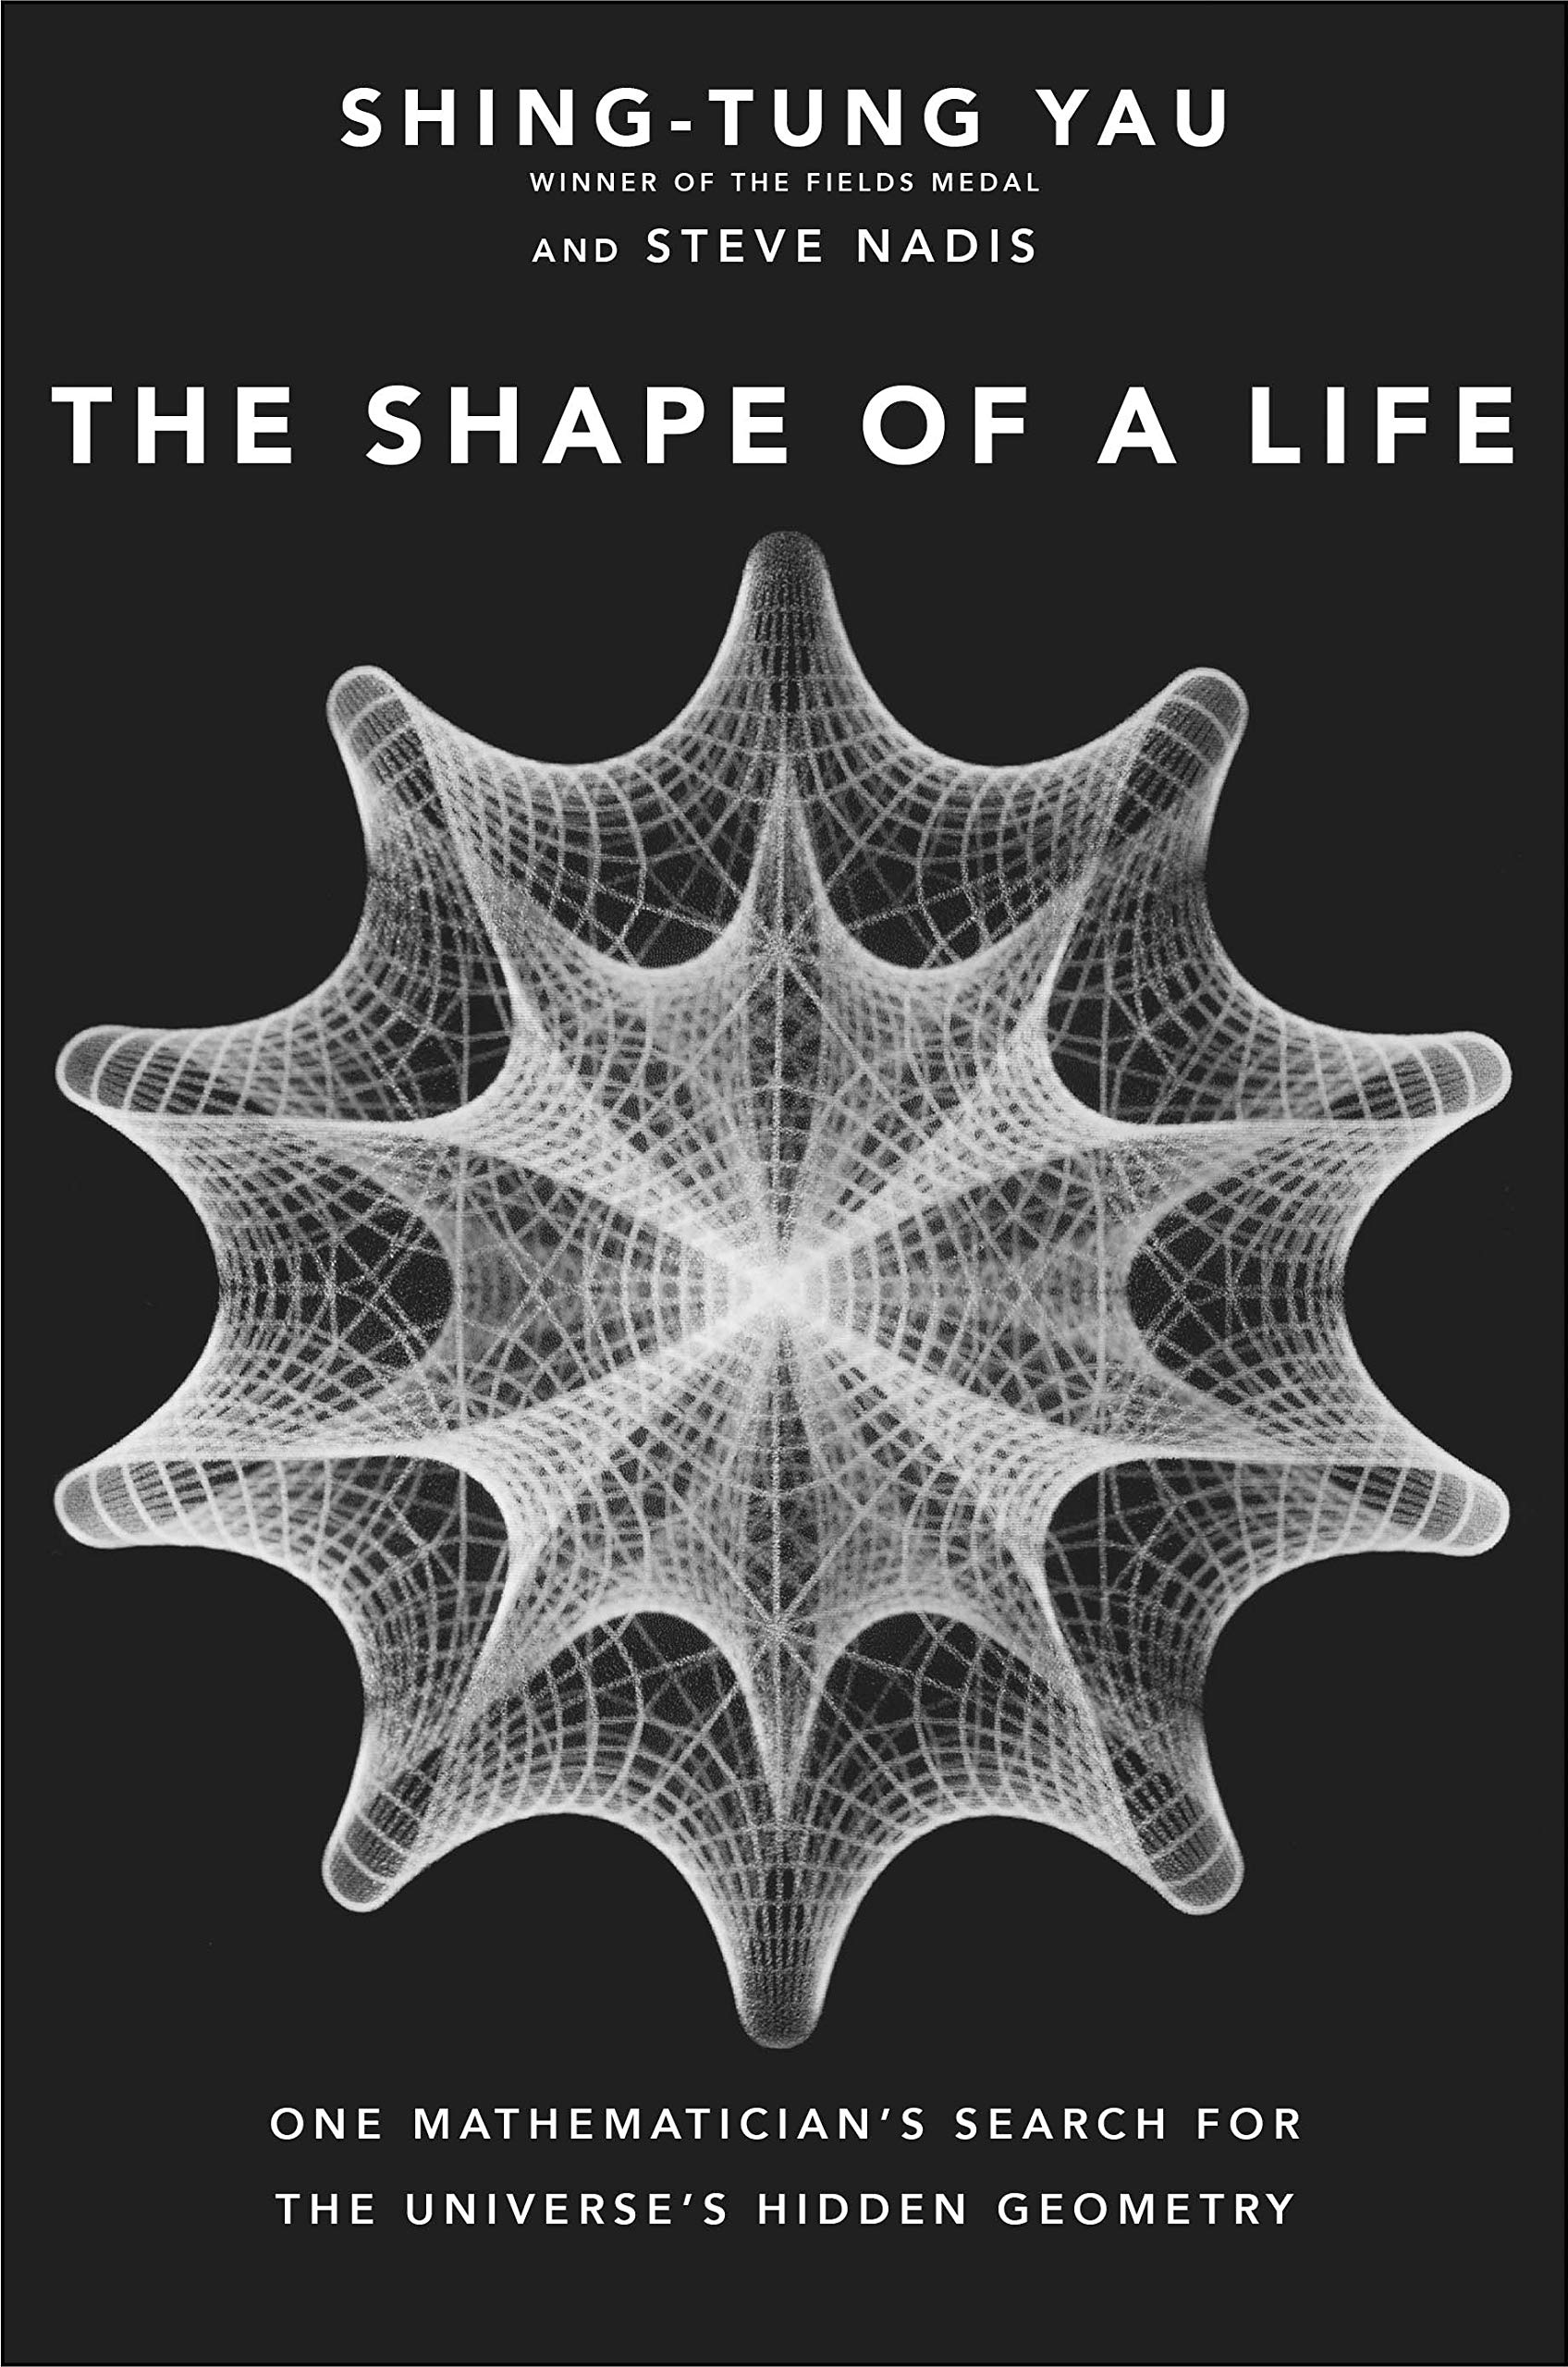 The Shape of a Life by Shing-Tung Yau